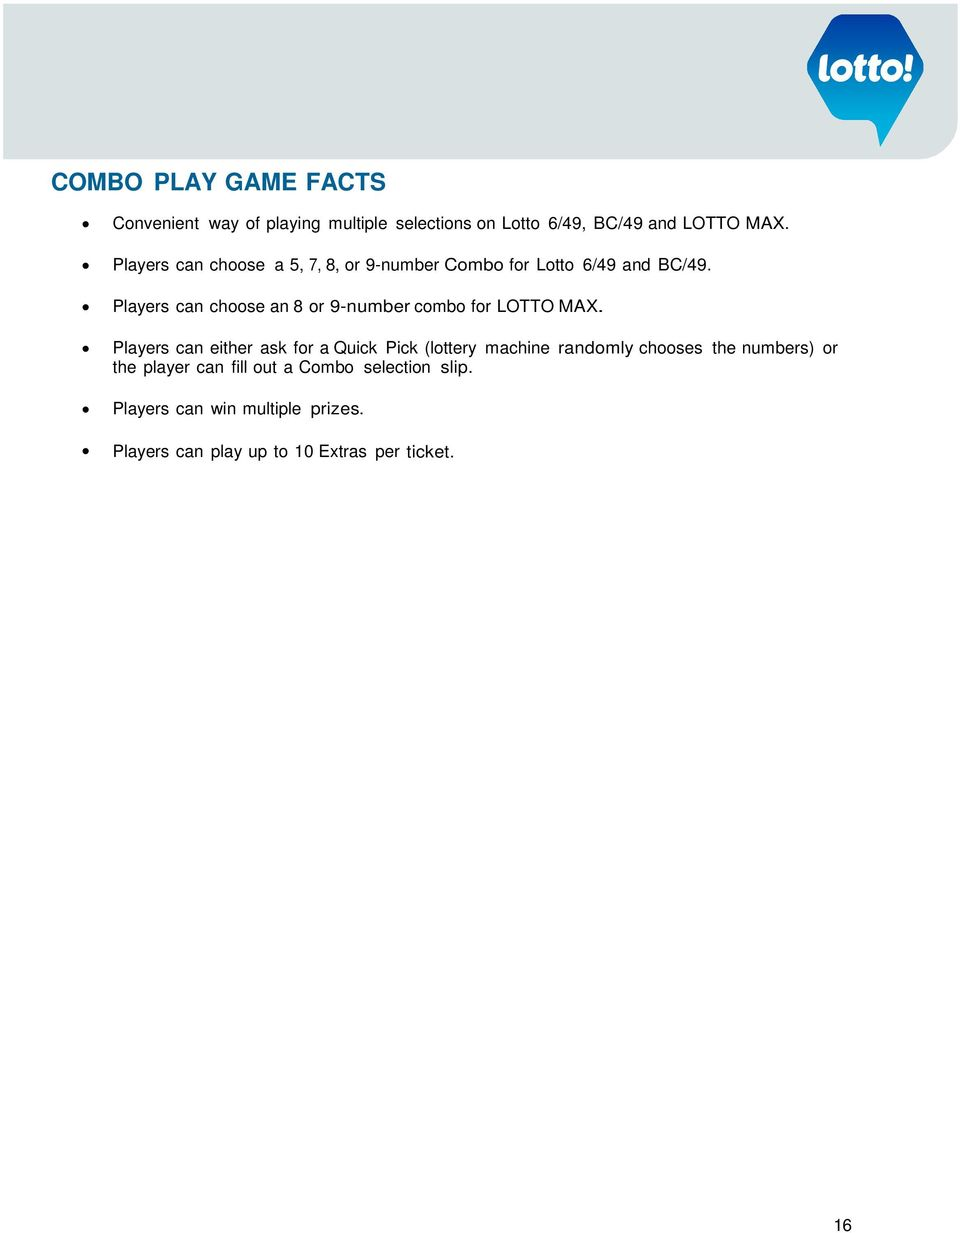 Players can choose an 8 or 9-number combo for LOTTO MAX.